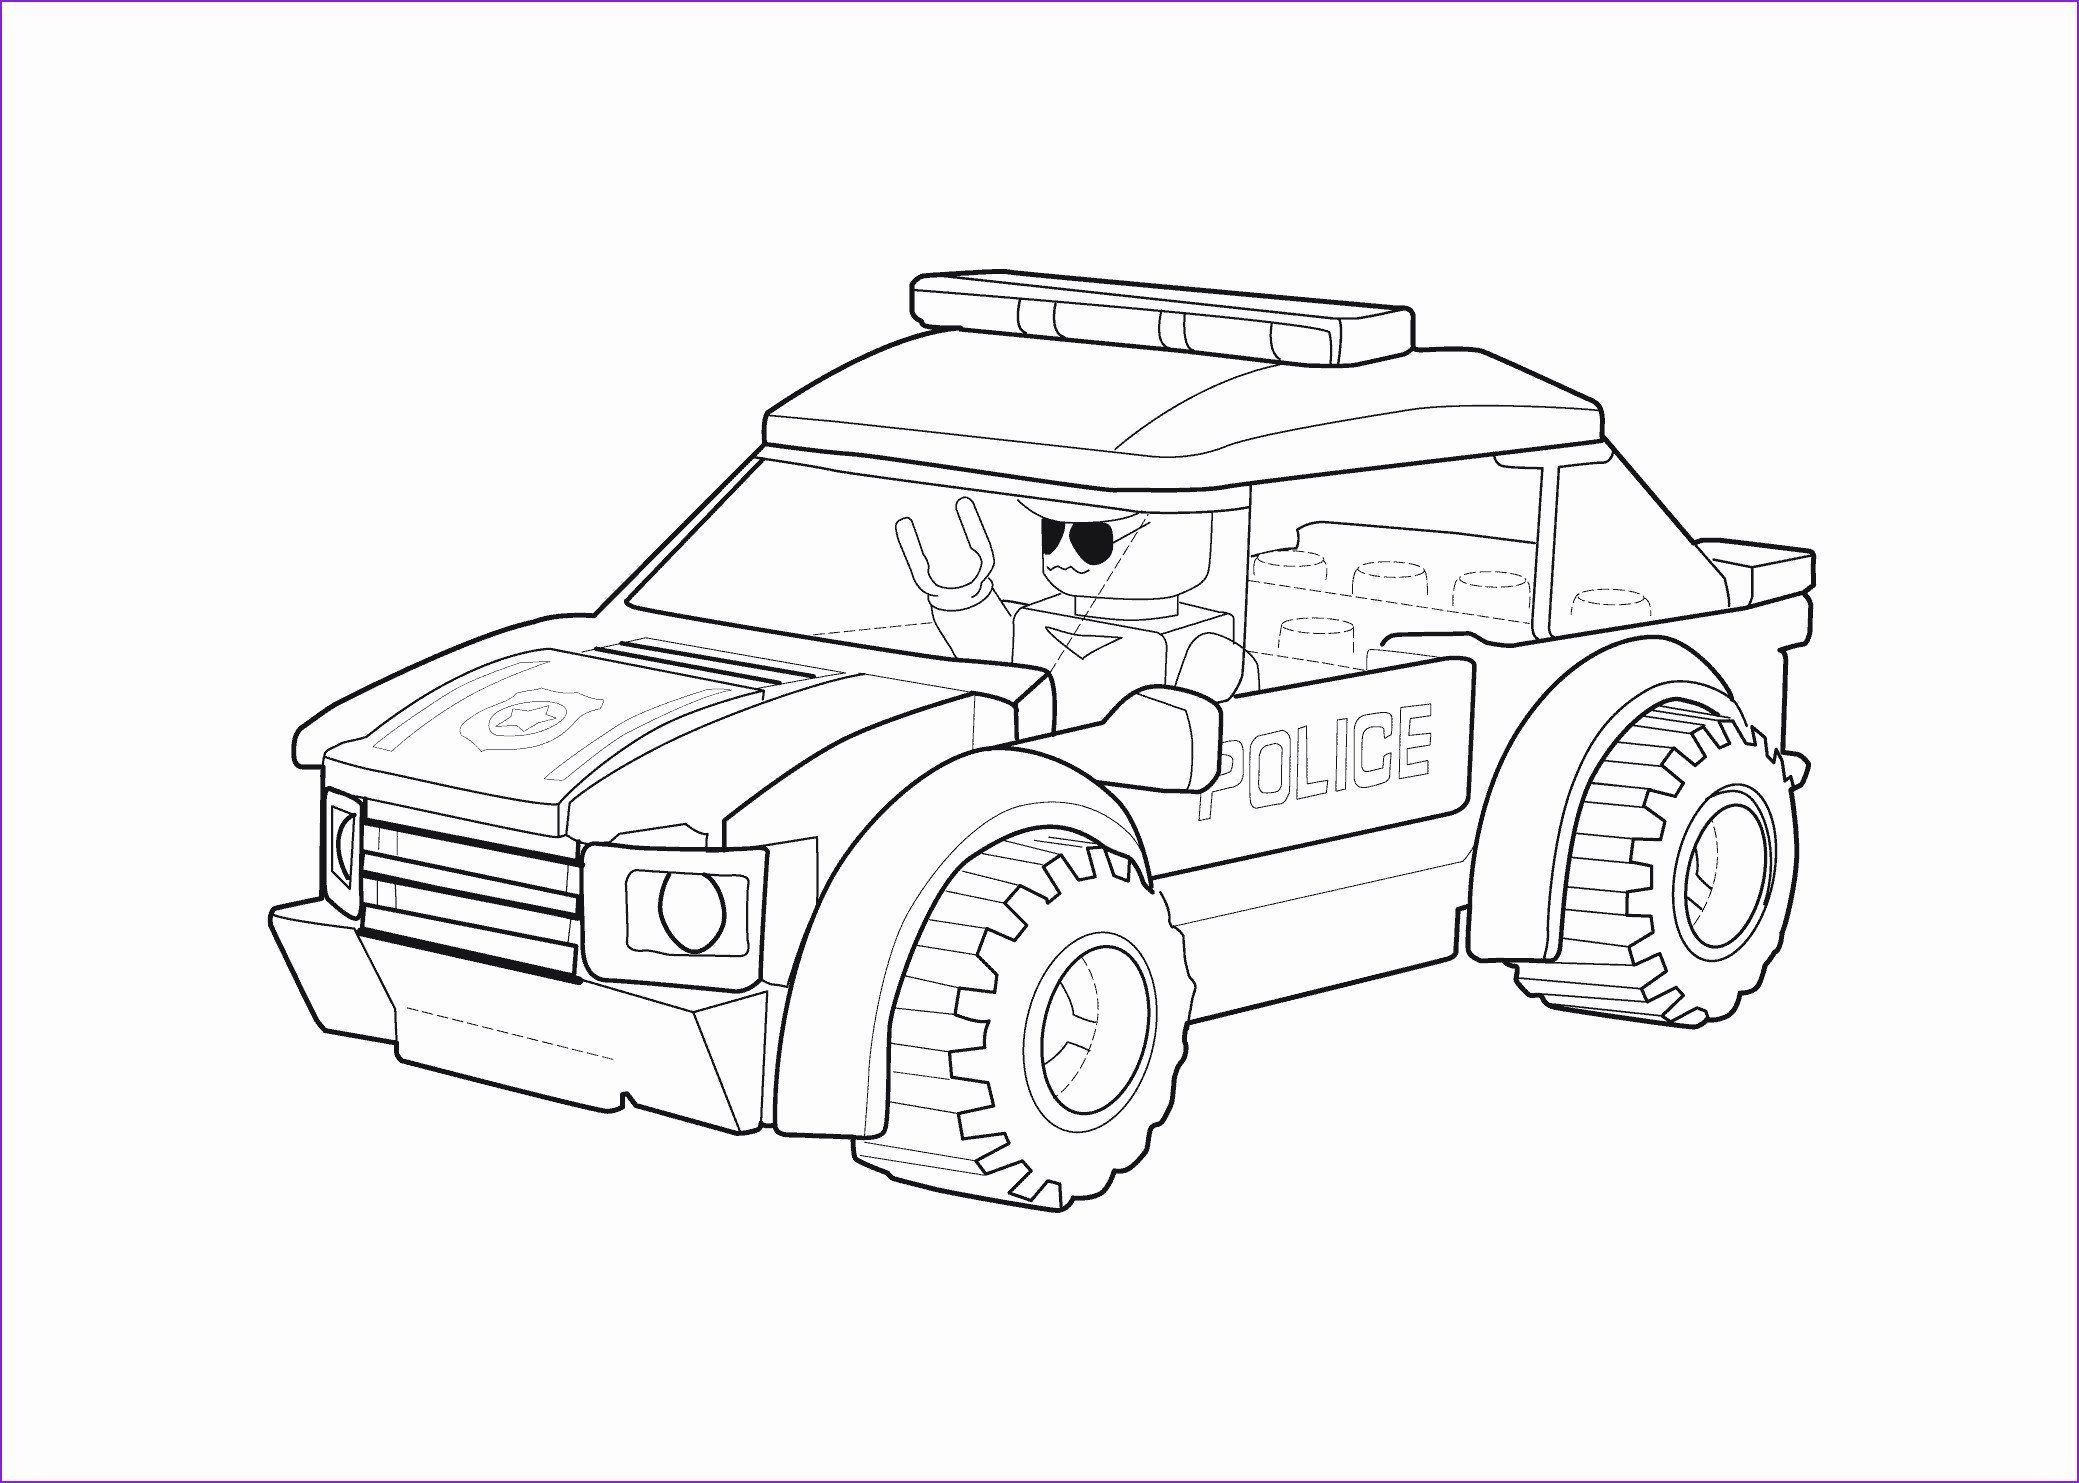 Lego Superheroes Coloring Pages Inspirational Lego Marvel Ausmalbilder Inspiration Marvel Super Heroes In 2020 Batman Coloring Pages Lego Coloring Lego Coloring Pages